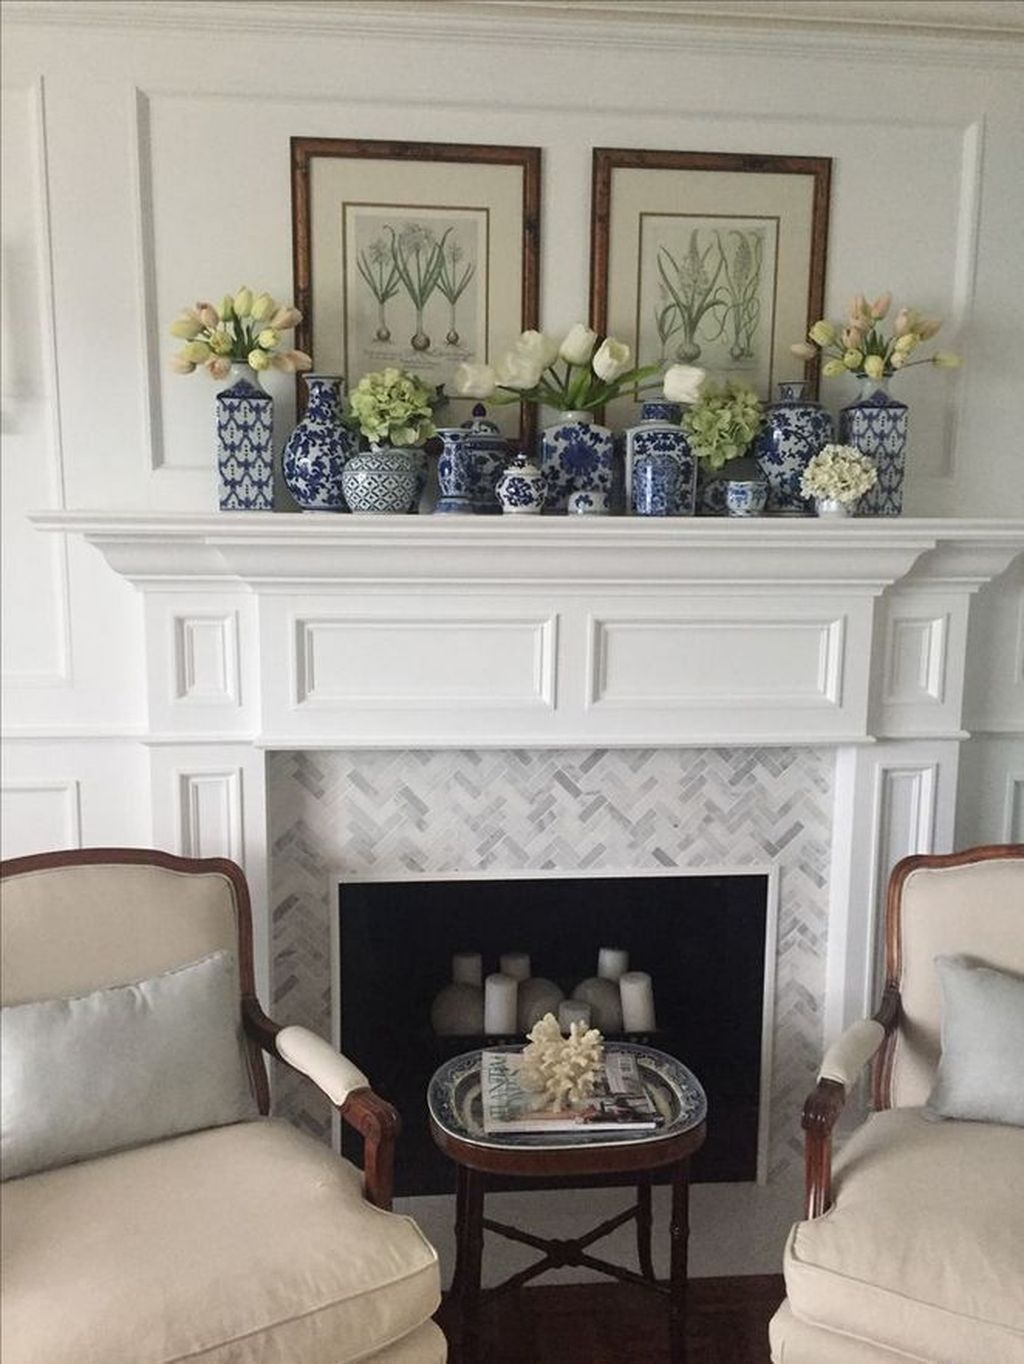 Stunning Fireplace Mantel Decor Ideas You Should Copy Now 01